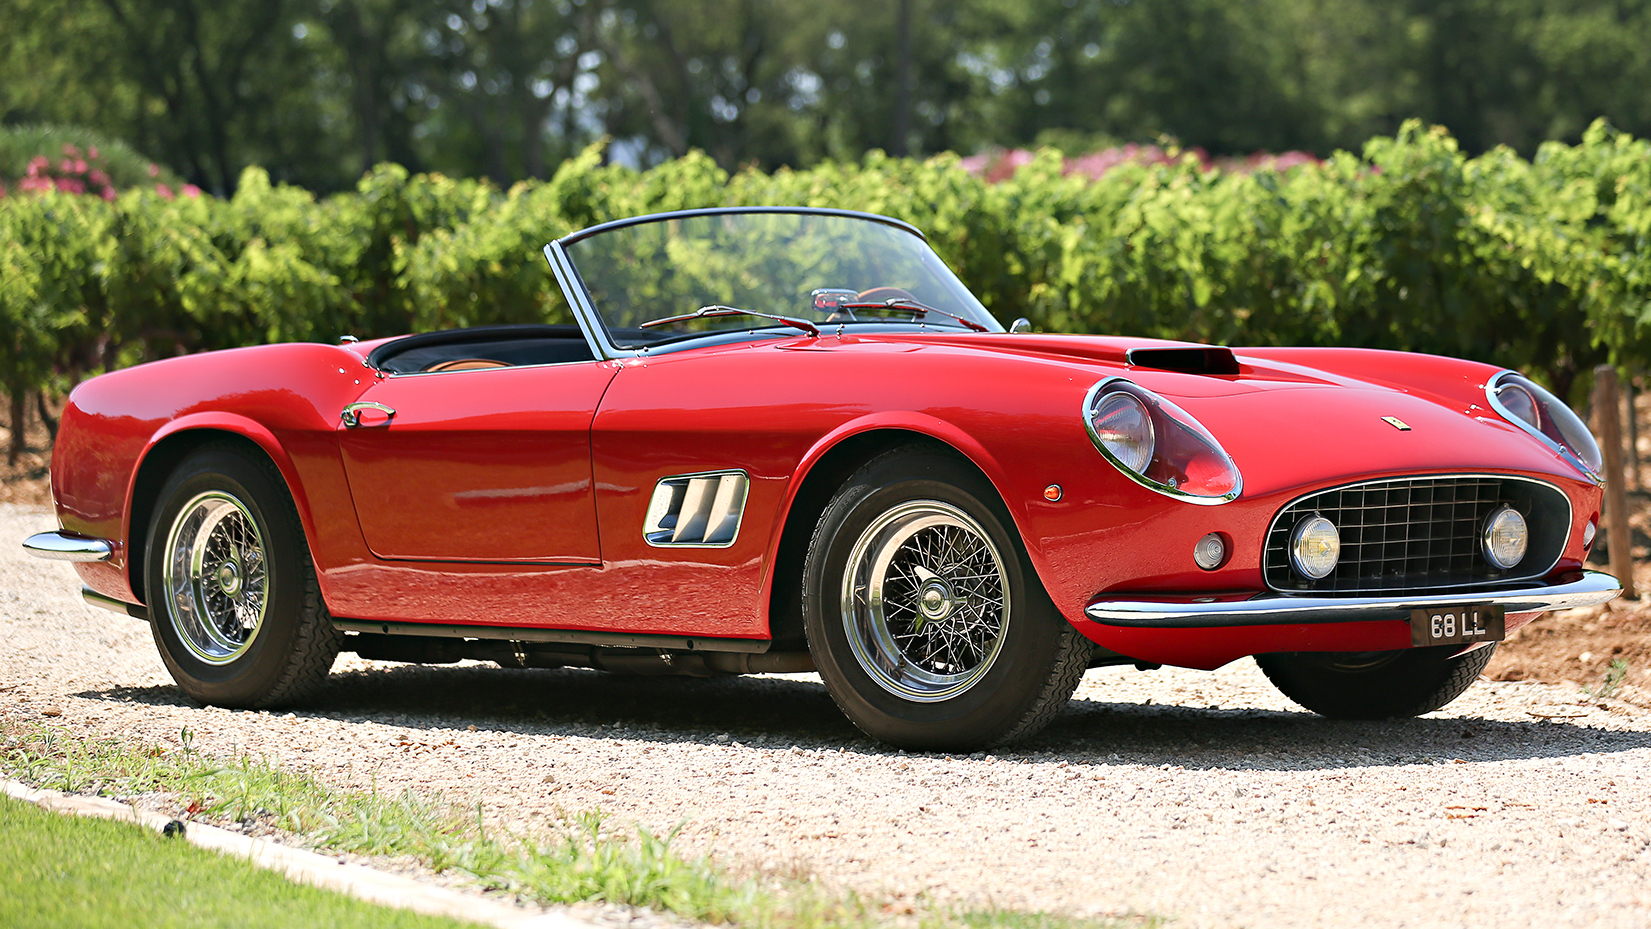 Will this Ferrari 250 GT California Spider fetch $18m? | Top Gear